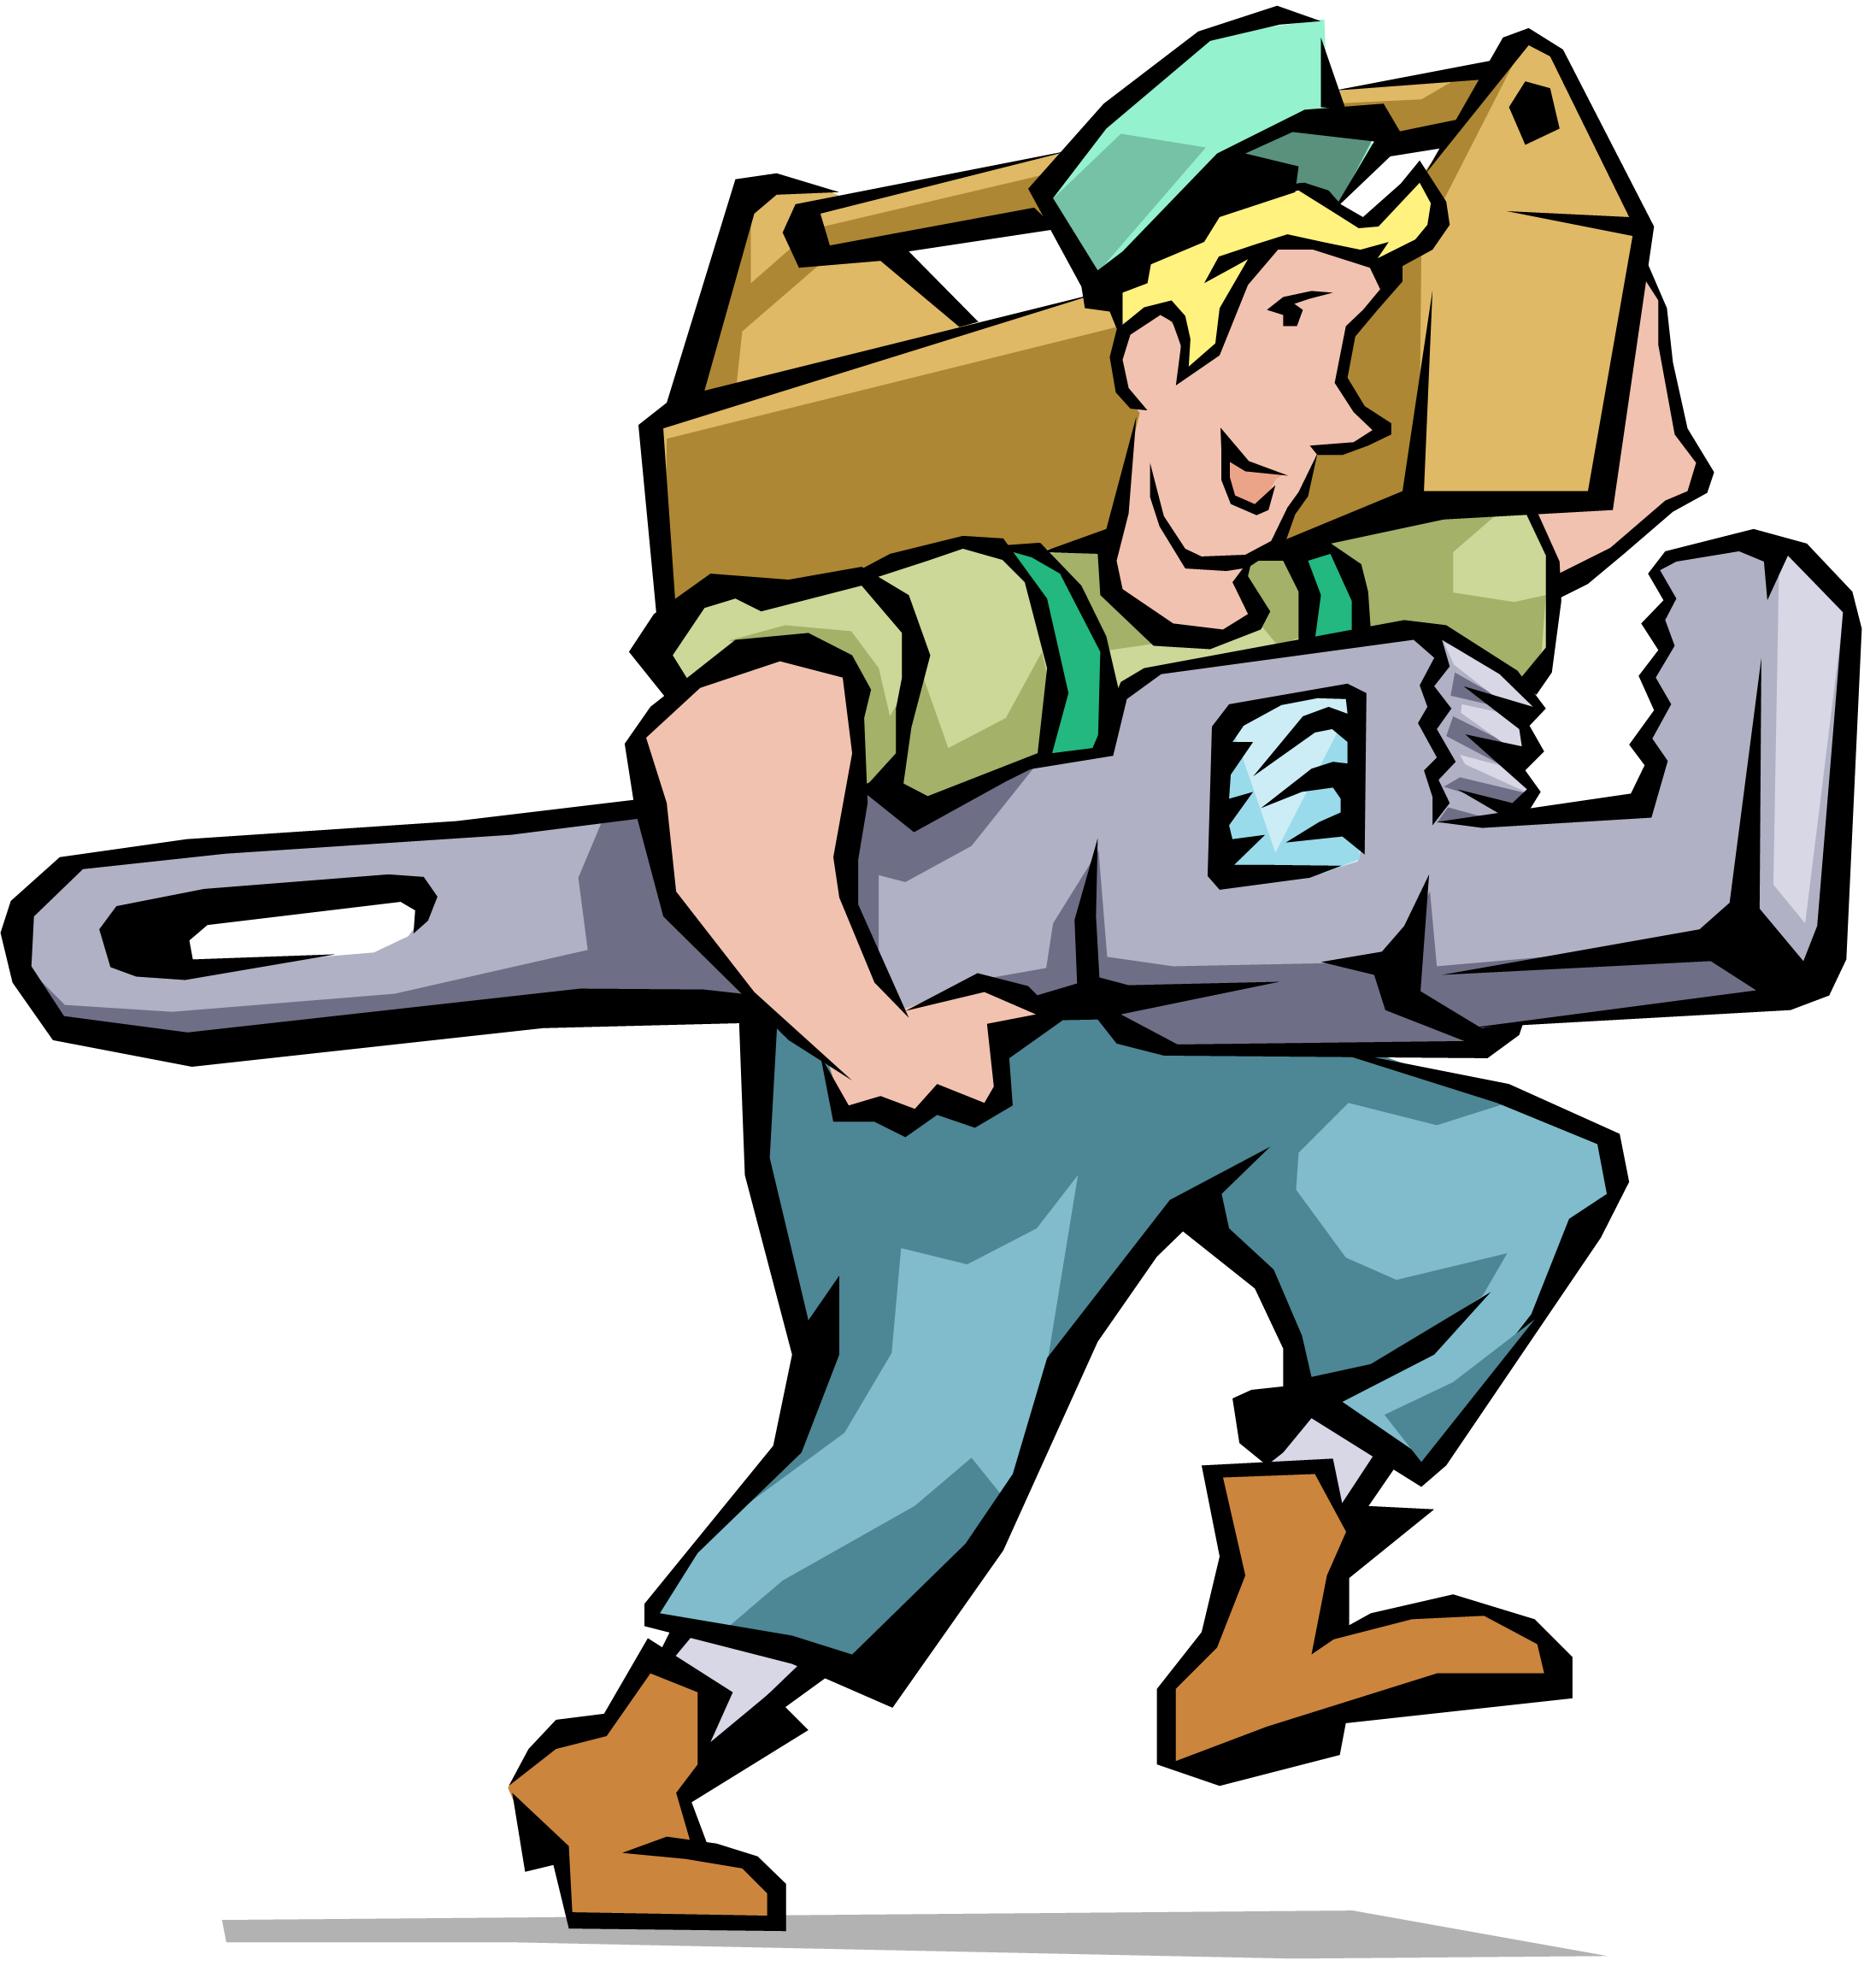 Handyman free download clip art on clipart library.